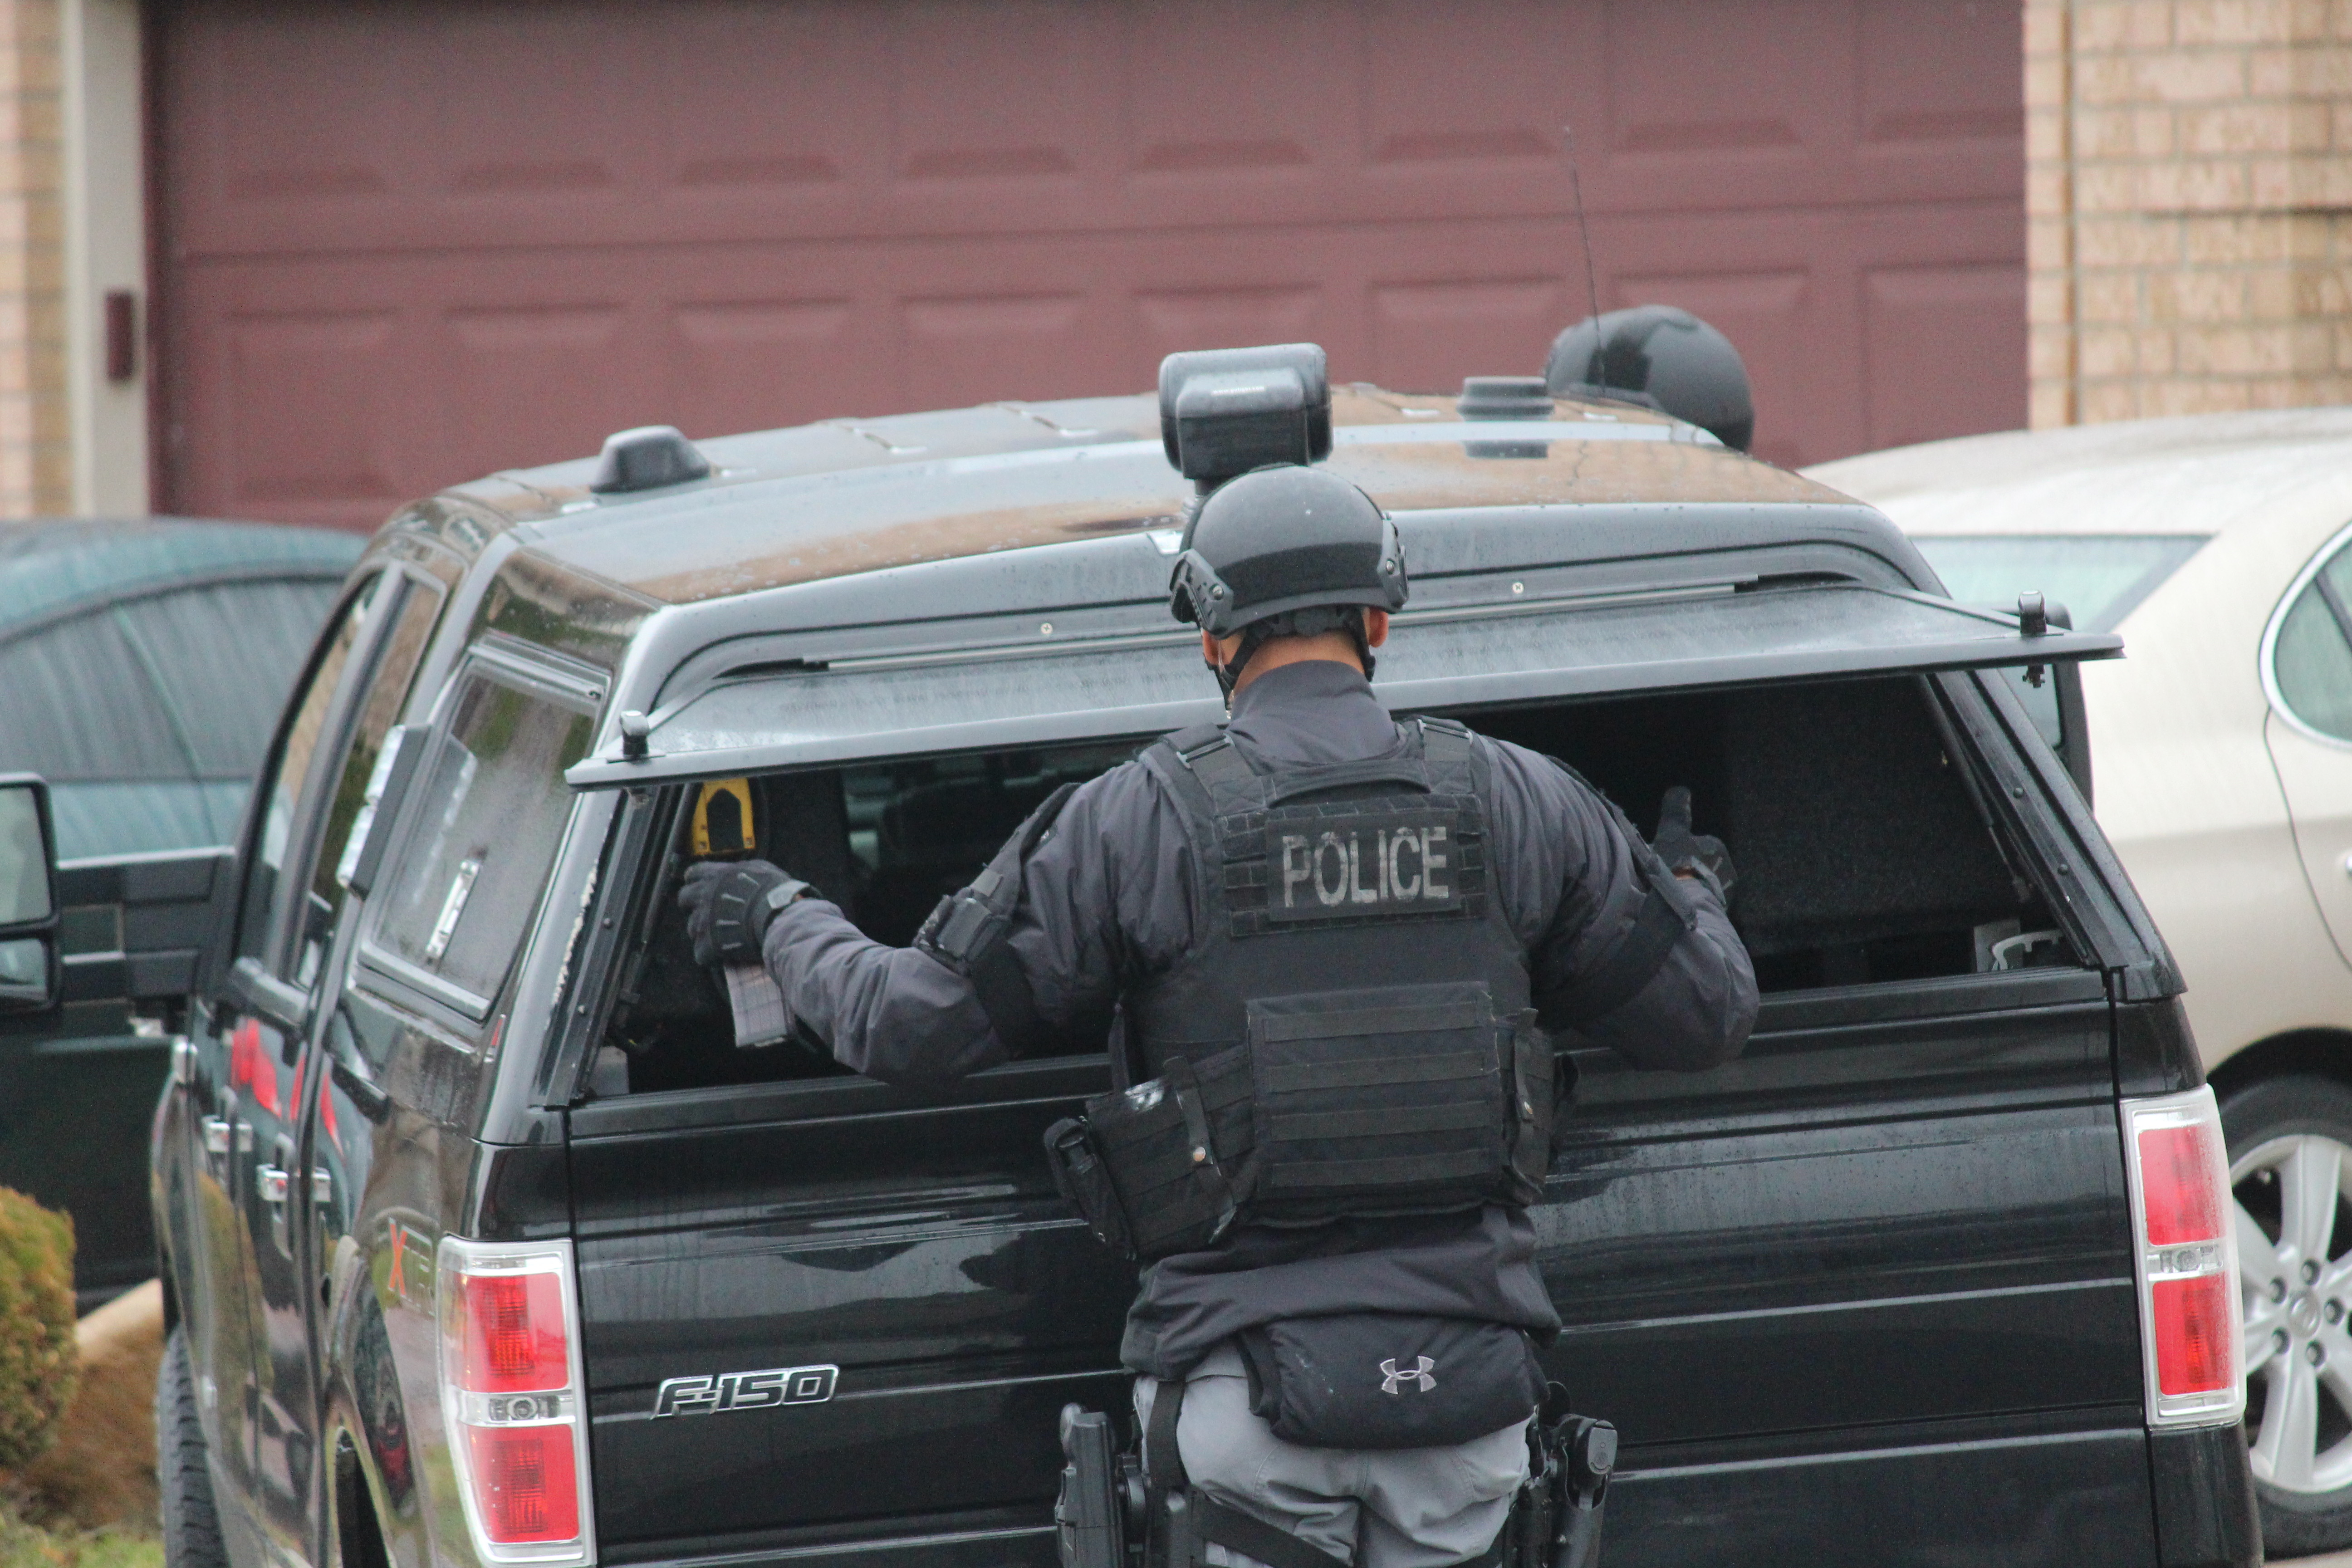 Windsor police ESU surround house in east Windsor to serve an outstanding arrest warrant, December 1, 2015. (Photo by Maureen Revait)